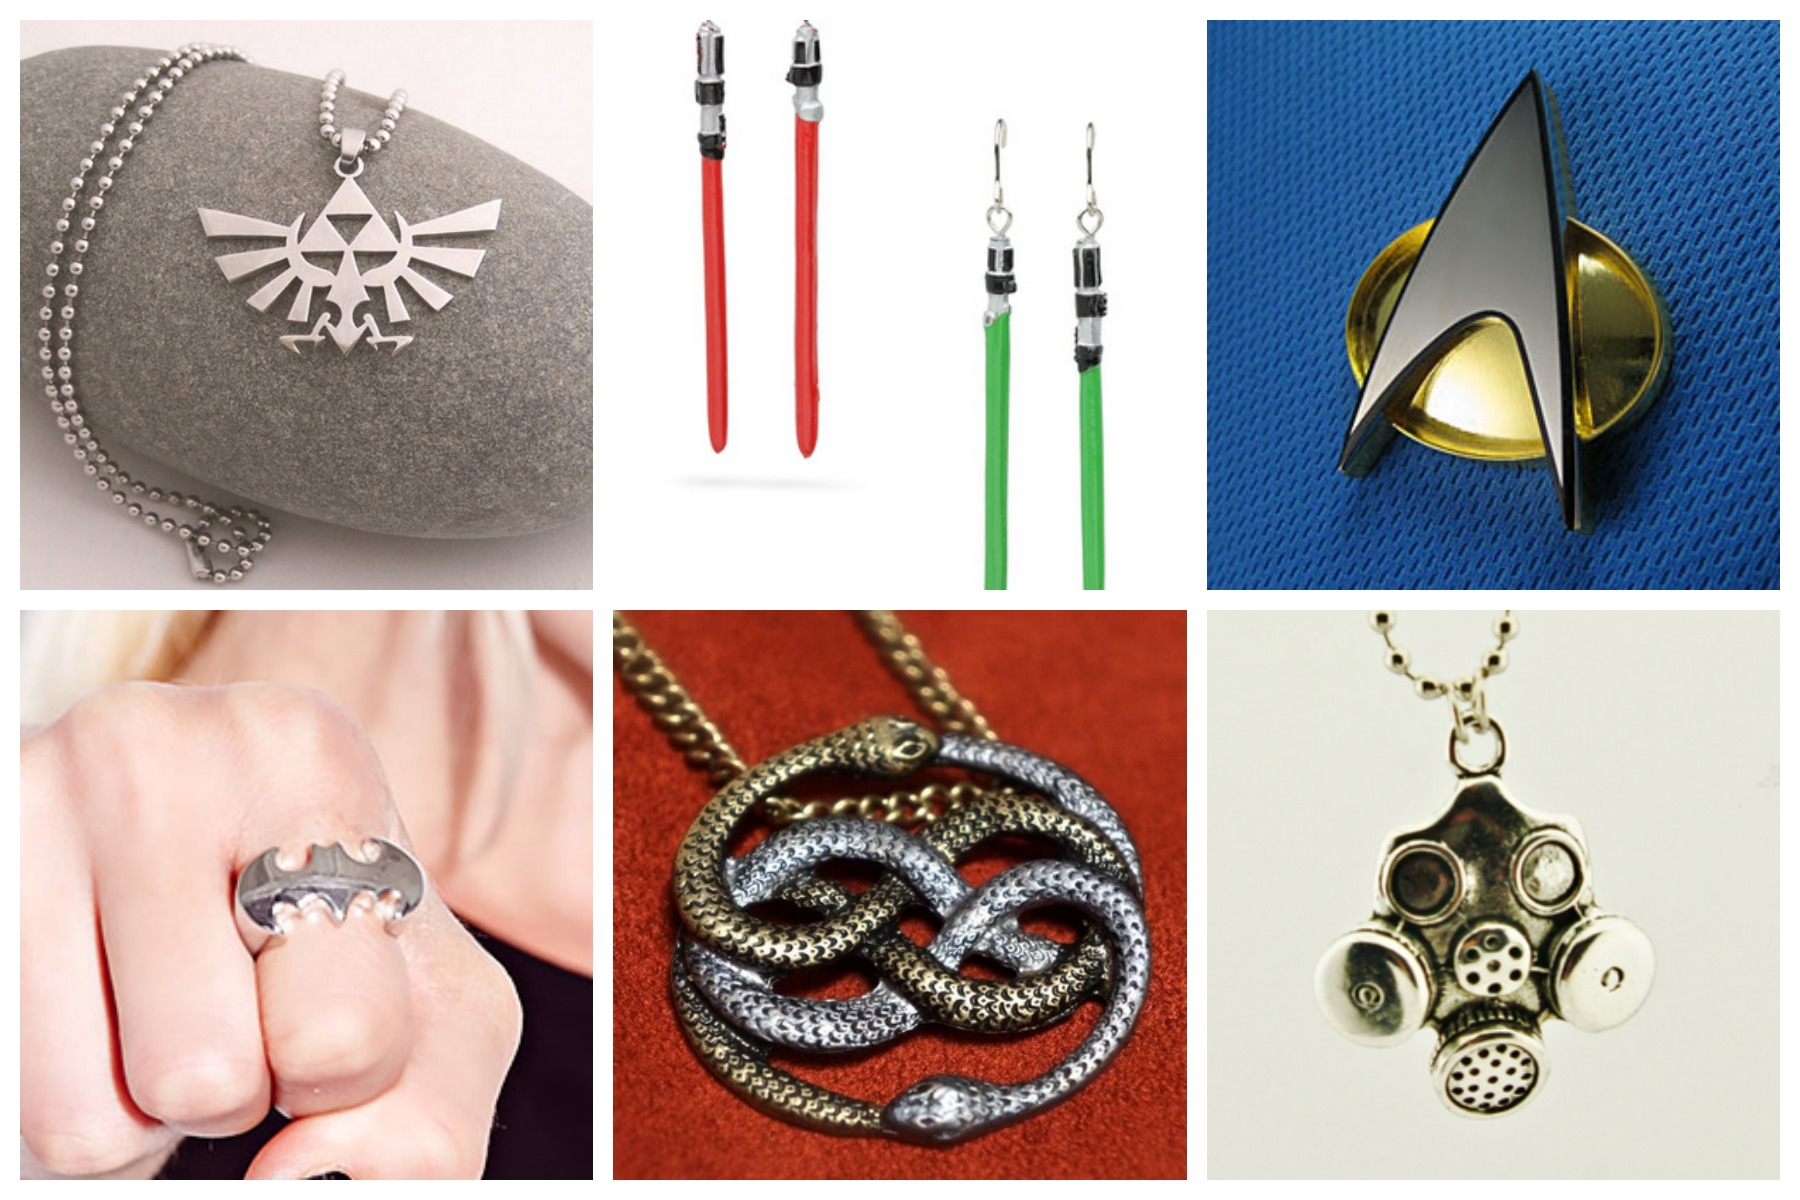 Geek Gifts: Star Trek jewelry, Zelda, Never Ending Story Necklace, Batman, Star Wars, Borderlands / Doctor Who, and more geek jewelry